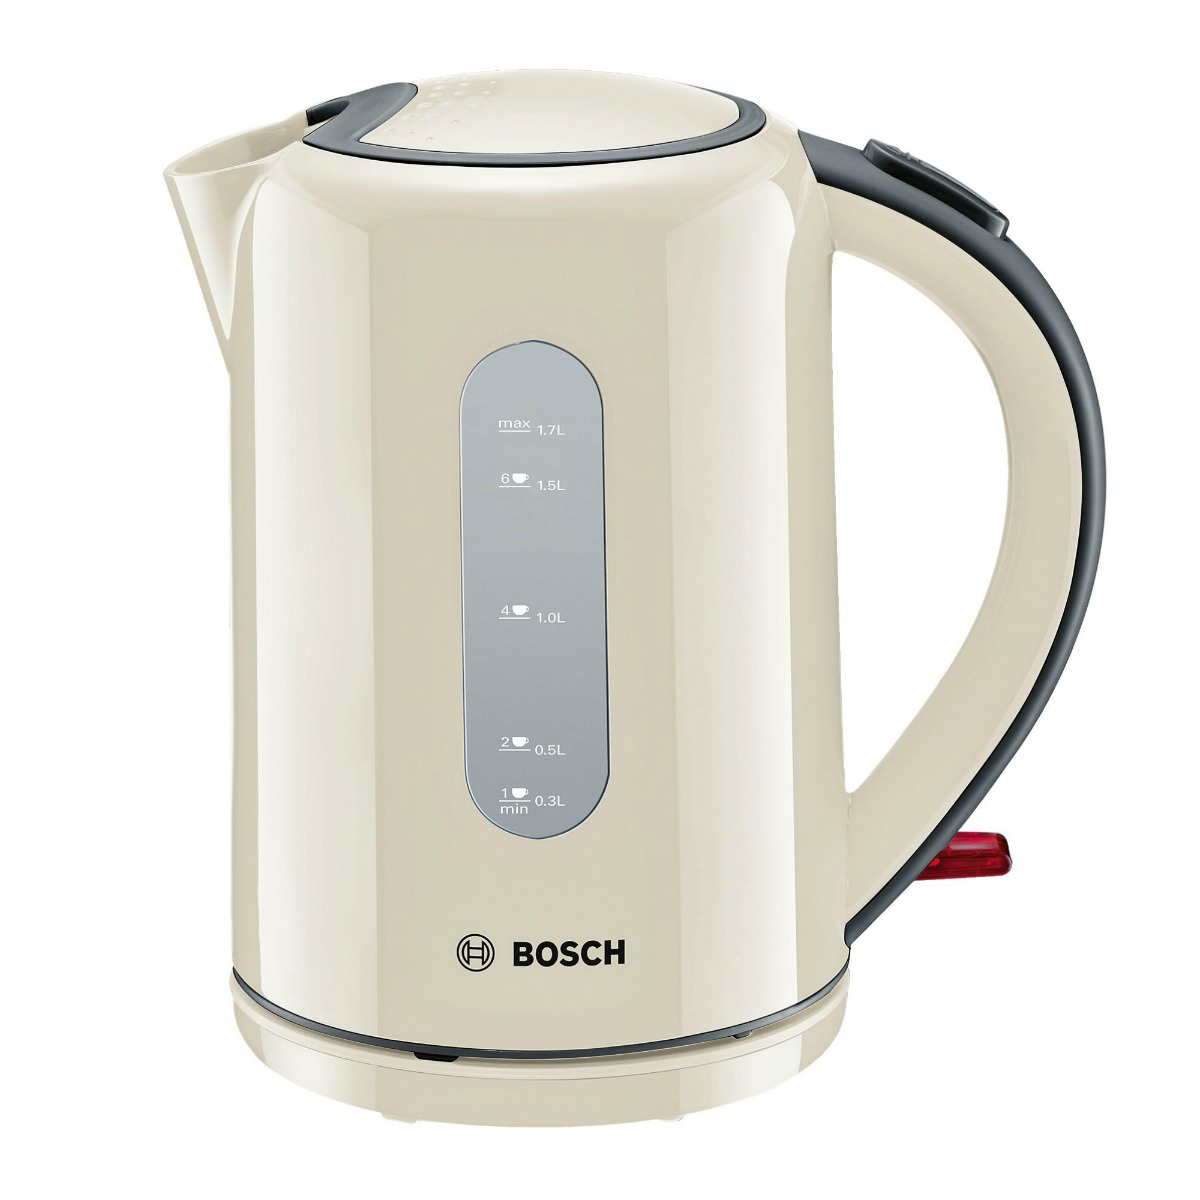 Image of Bosch Cordless Kettle (Colour: Cream, Availability: to order. Delivery charge £9.98 for mainland UK or free collection from store.)